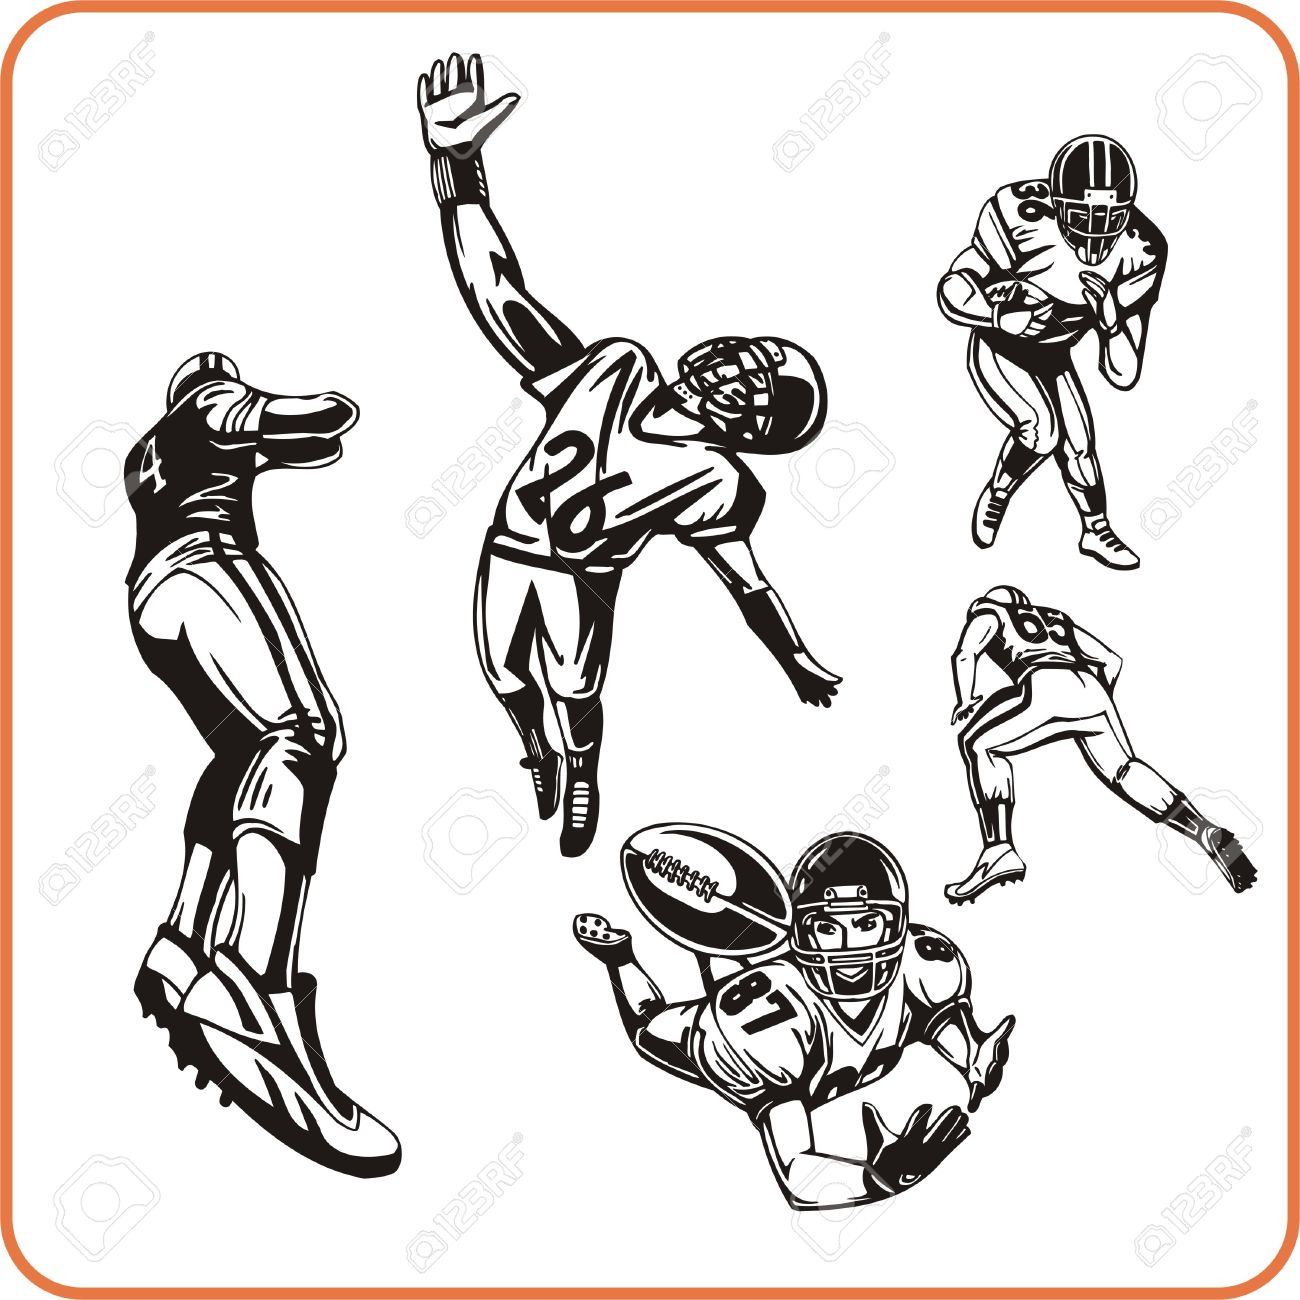 american football player vector illustration royalty free cliparts rh 123rf com american football vector logo american football vector free